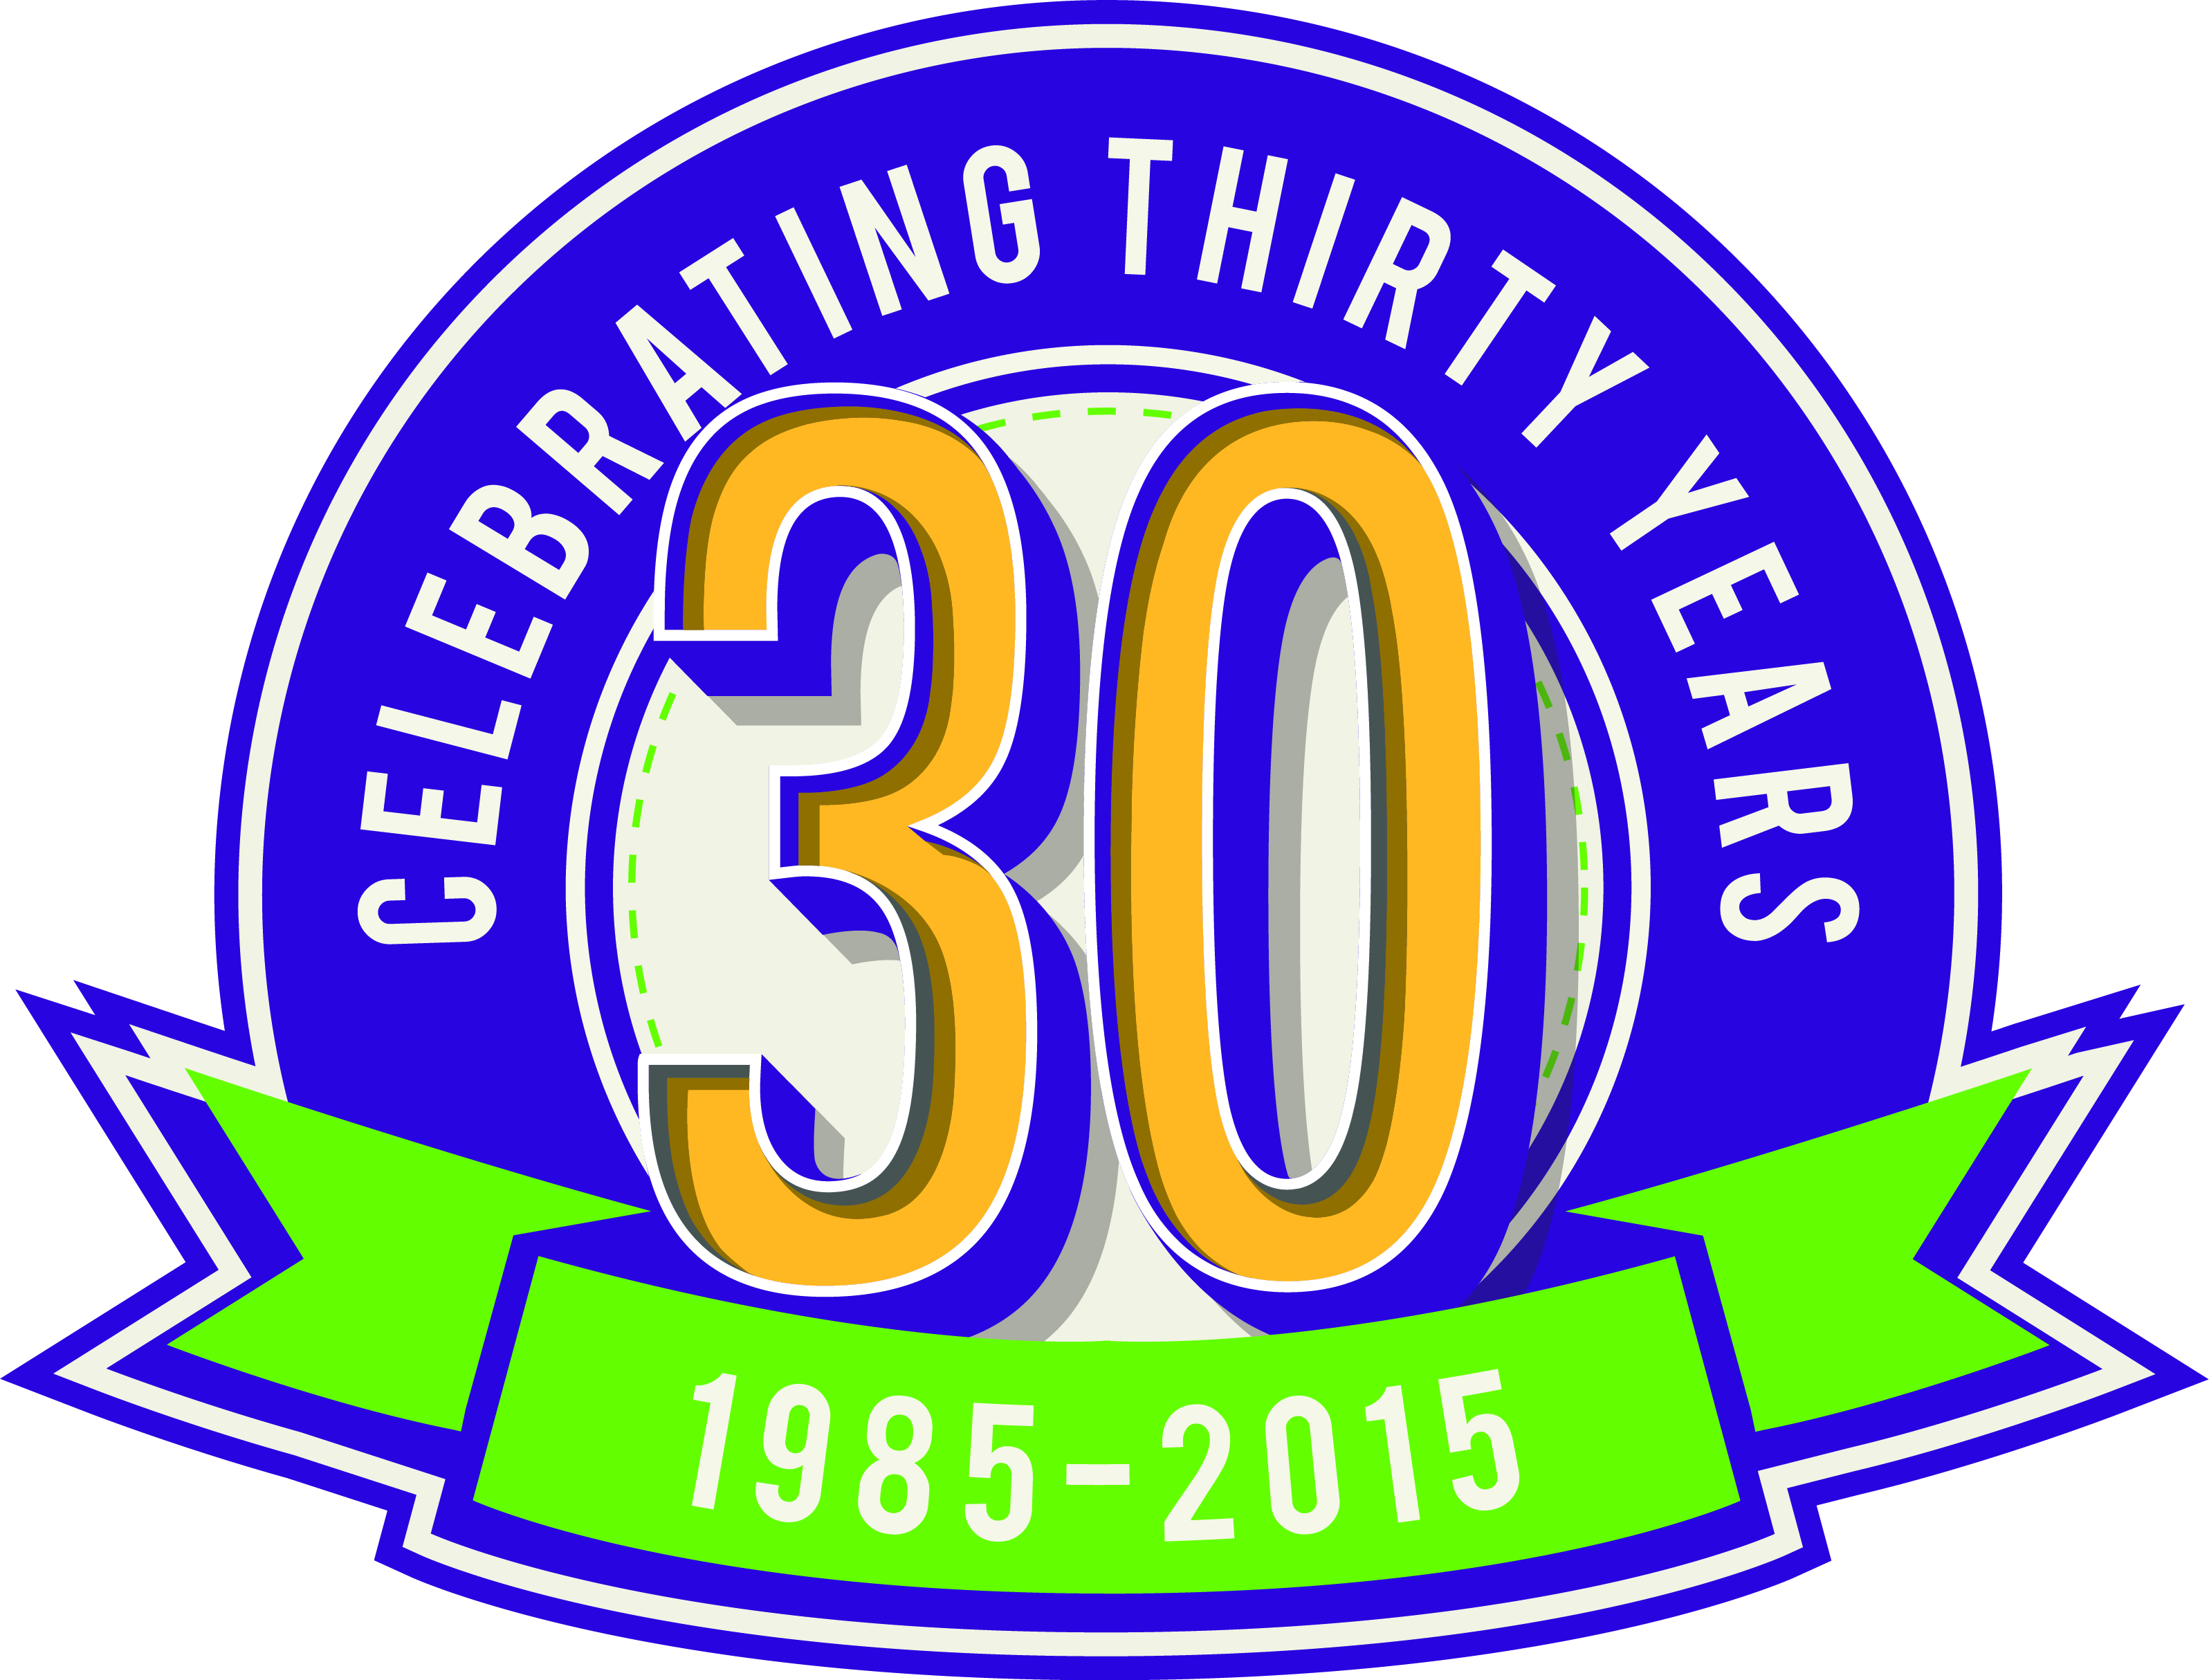 Seattle sutton s healthy eating celebrates 30 years of helping people